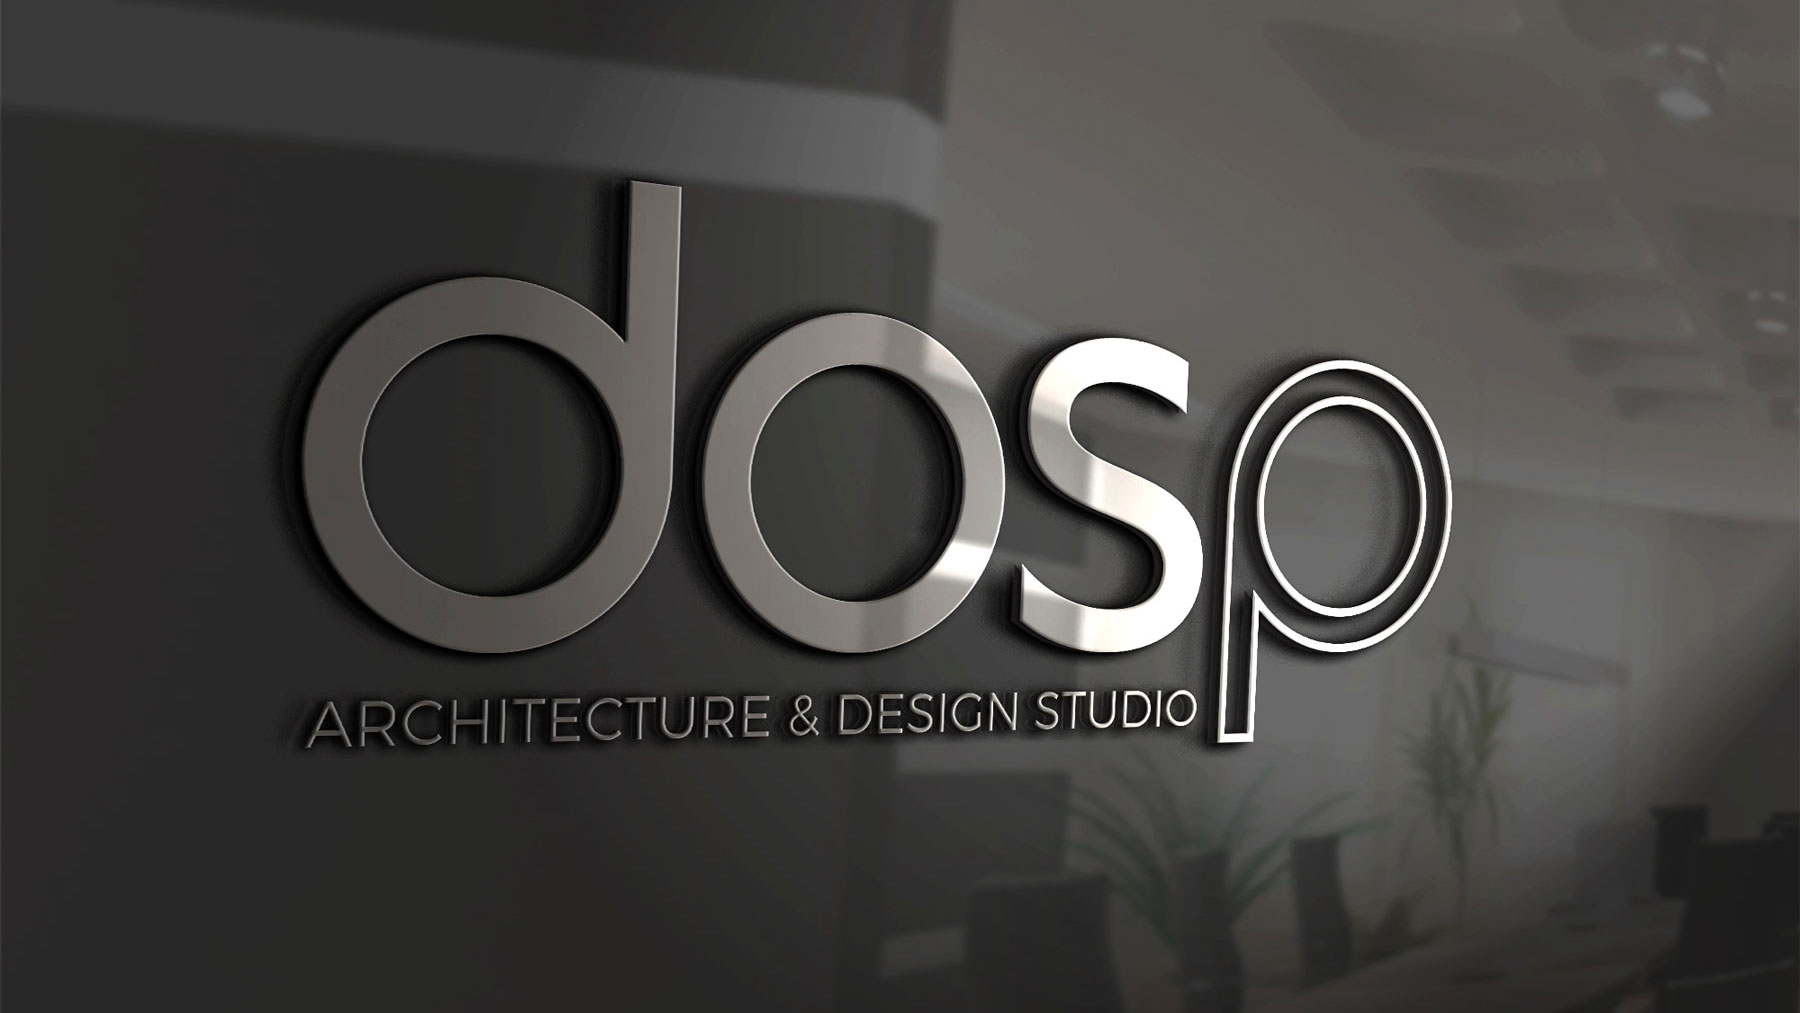 dosp architecture & design studio